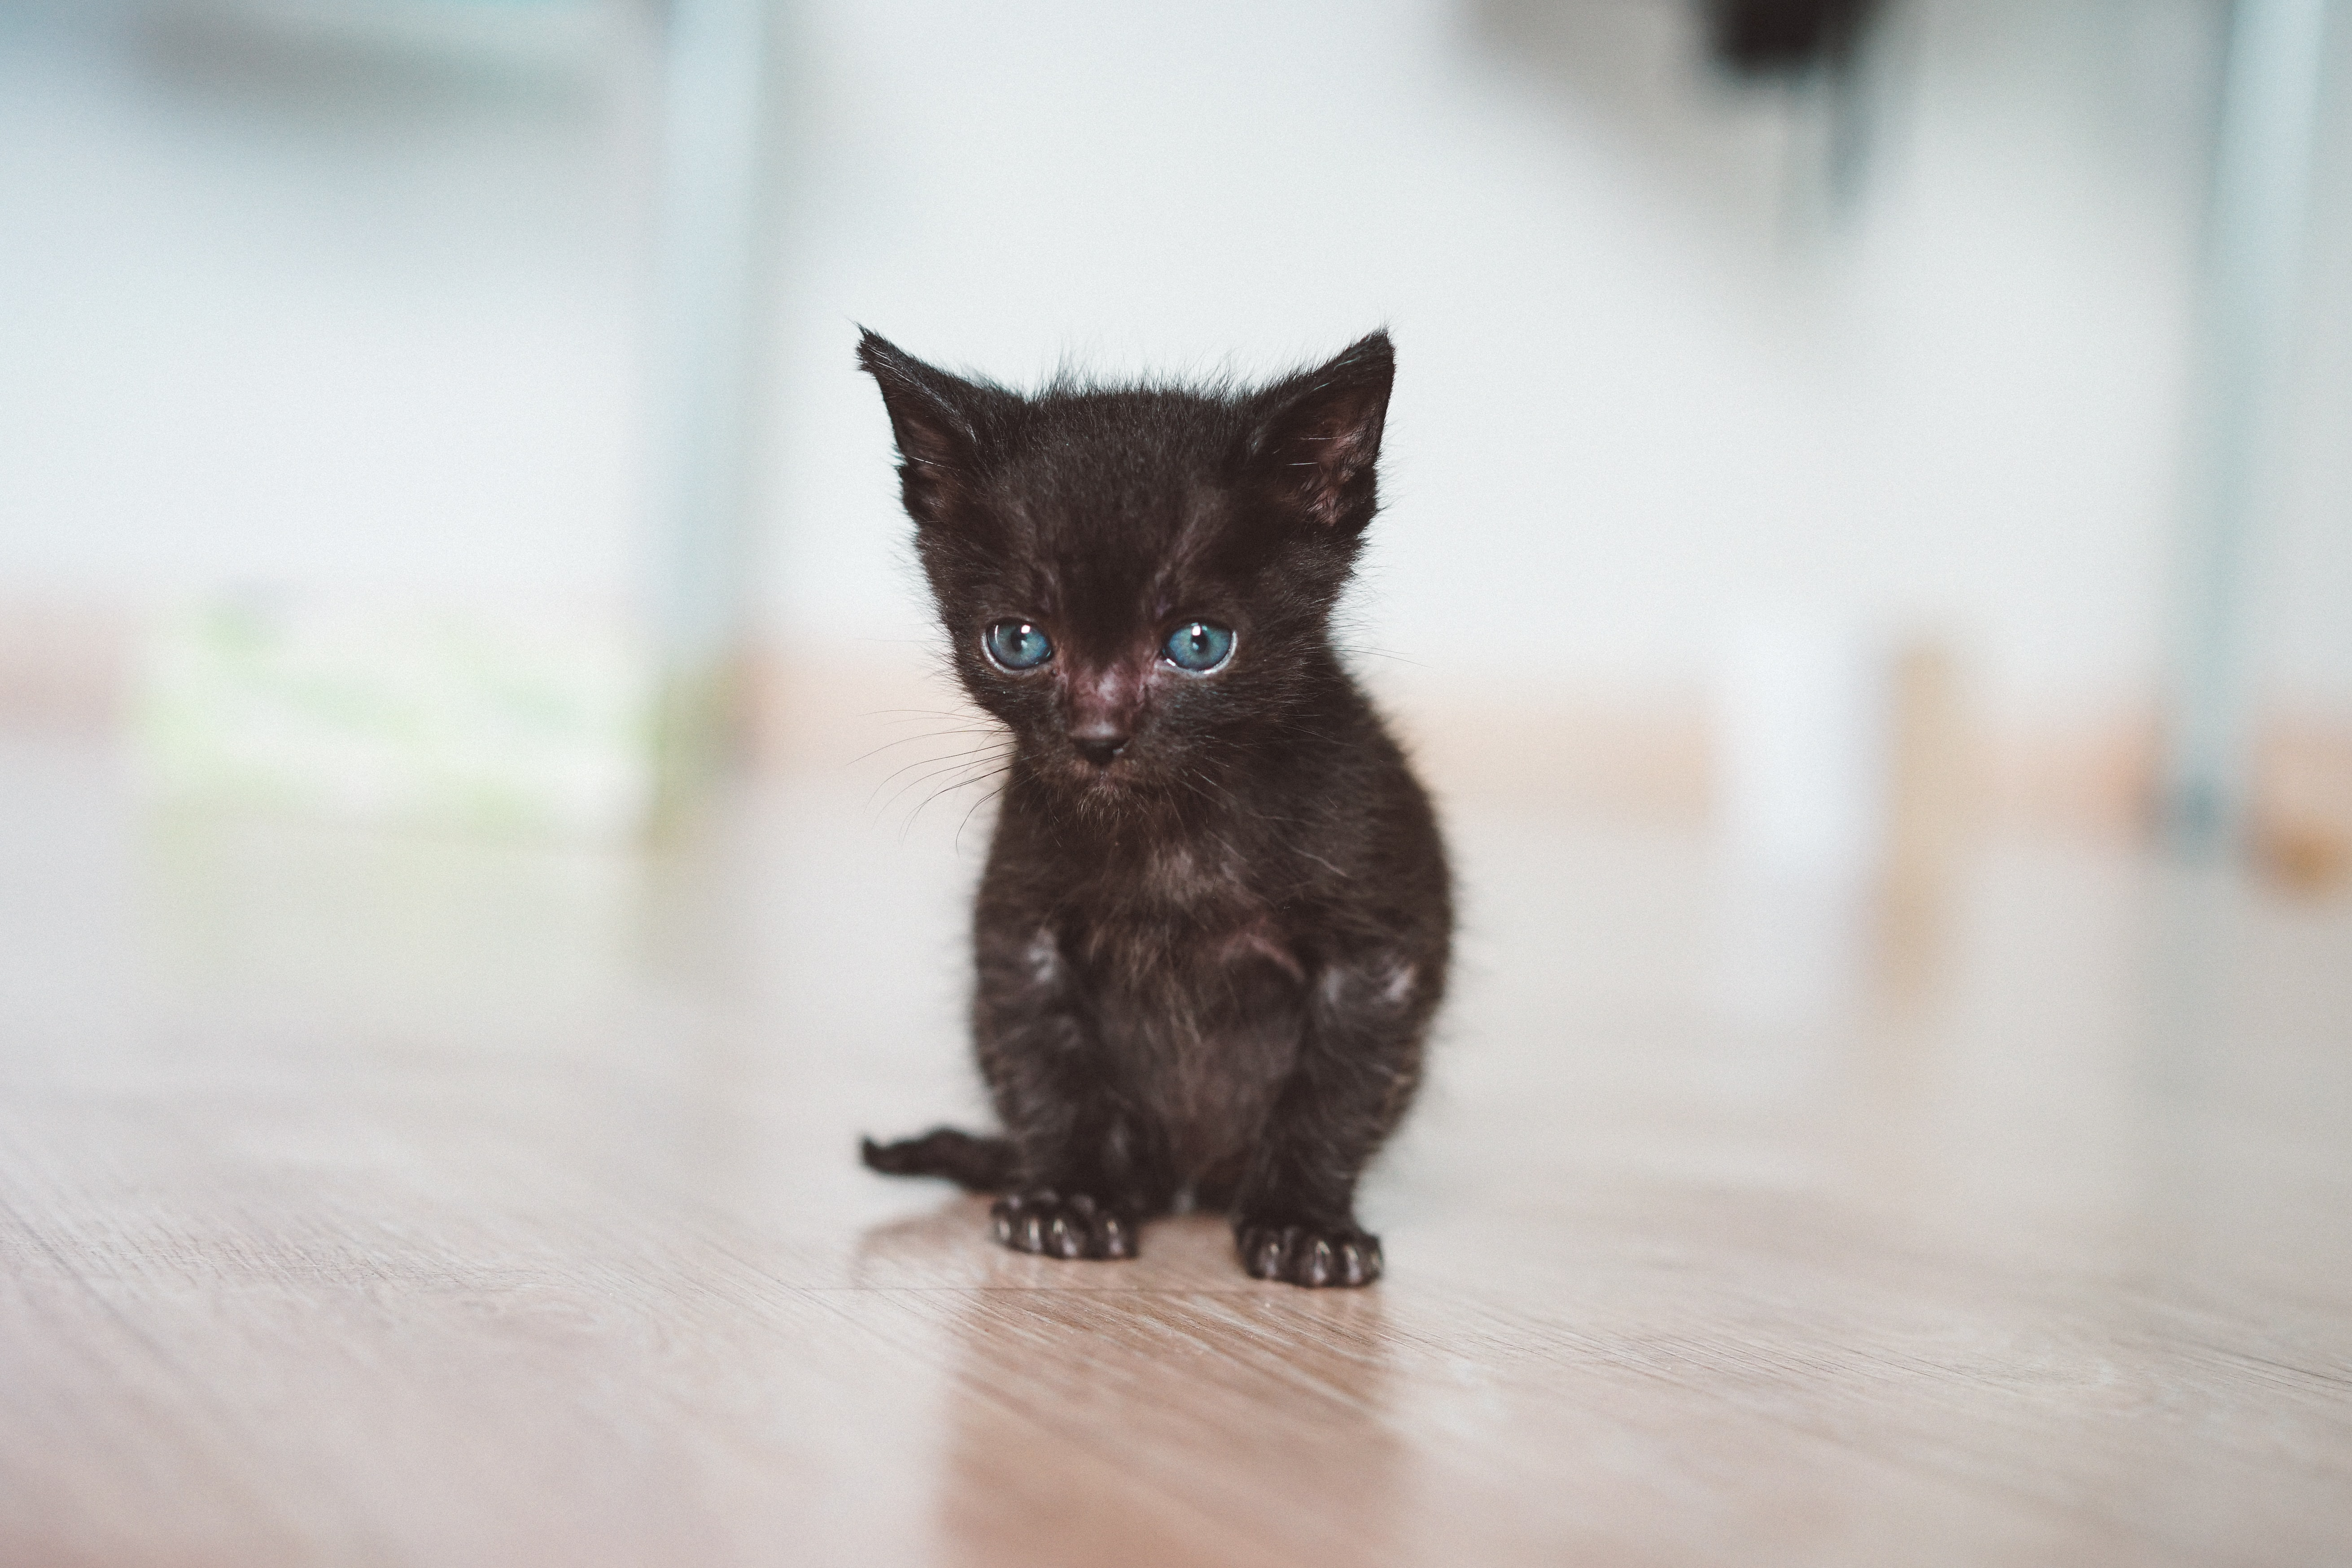 short-fur black kitten on brown wooden surface